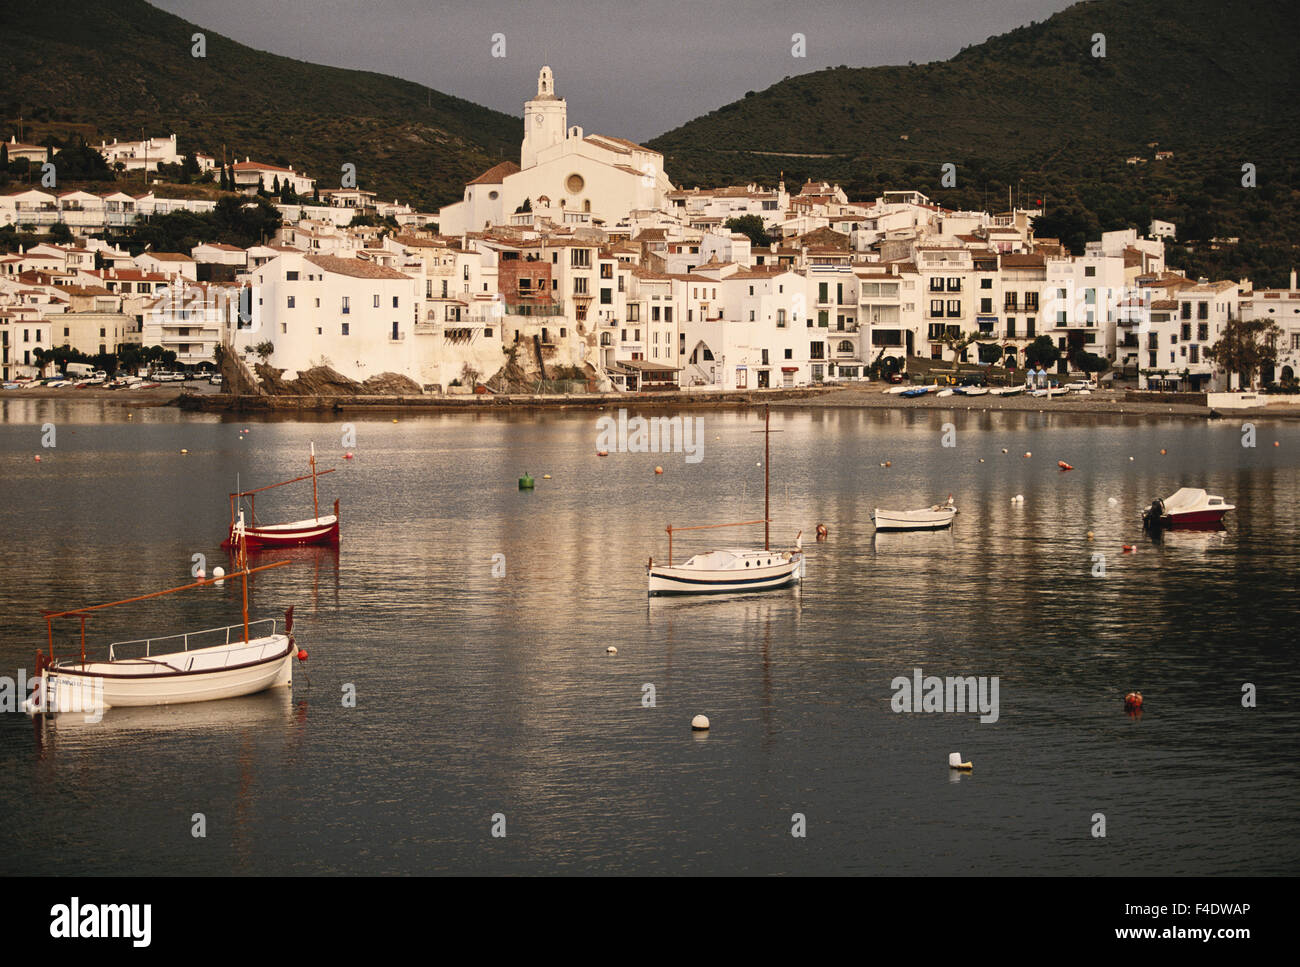 Spain, Catalonia, Costa Brava. boats. (Large format sizes available) - Stock Image